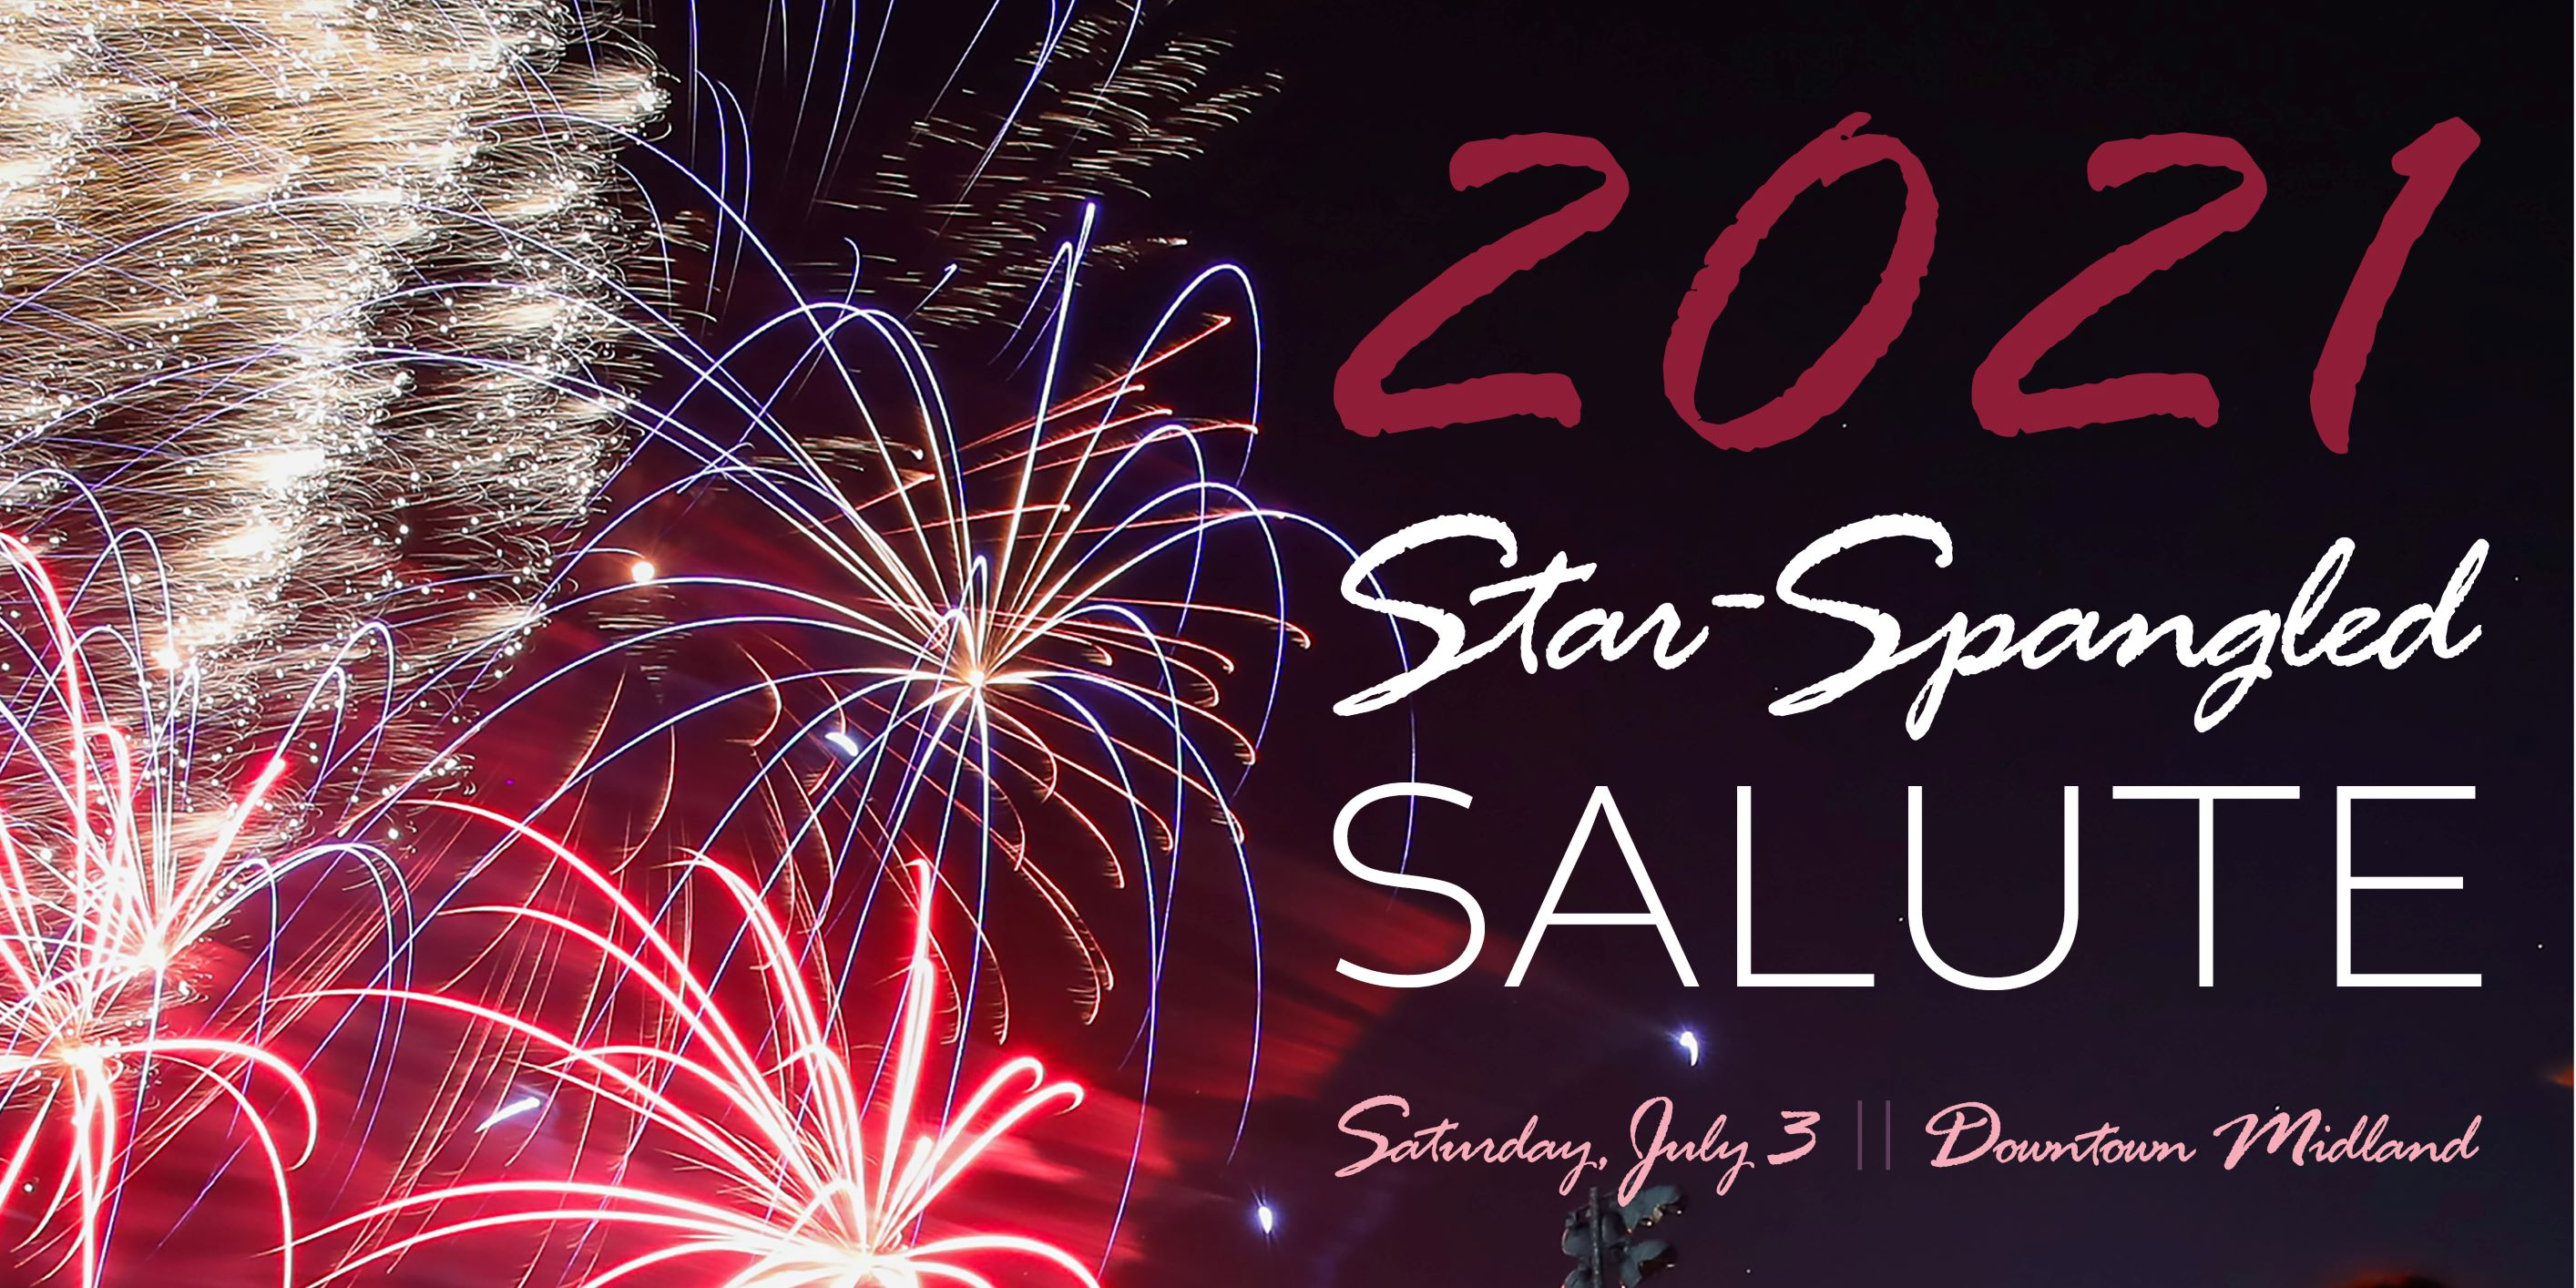 2021 Star-Spangled Salute - Midland Chamber of Commerce